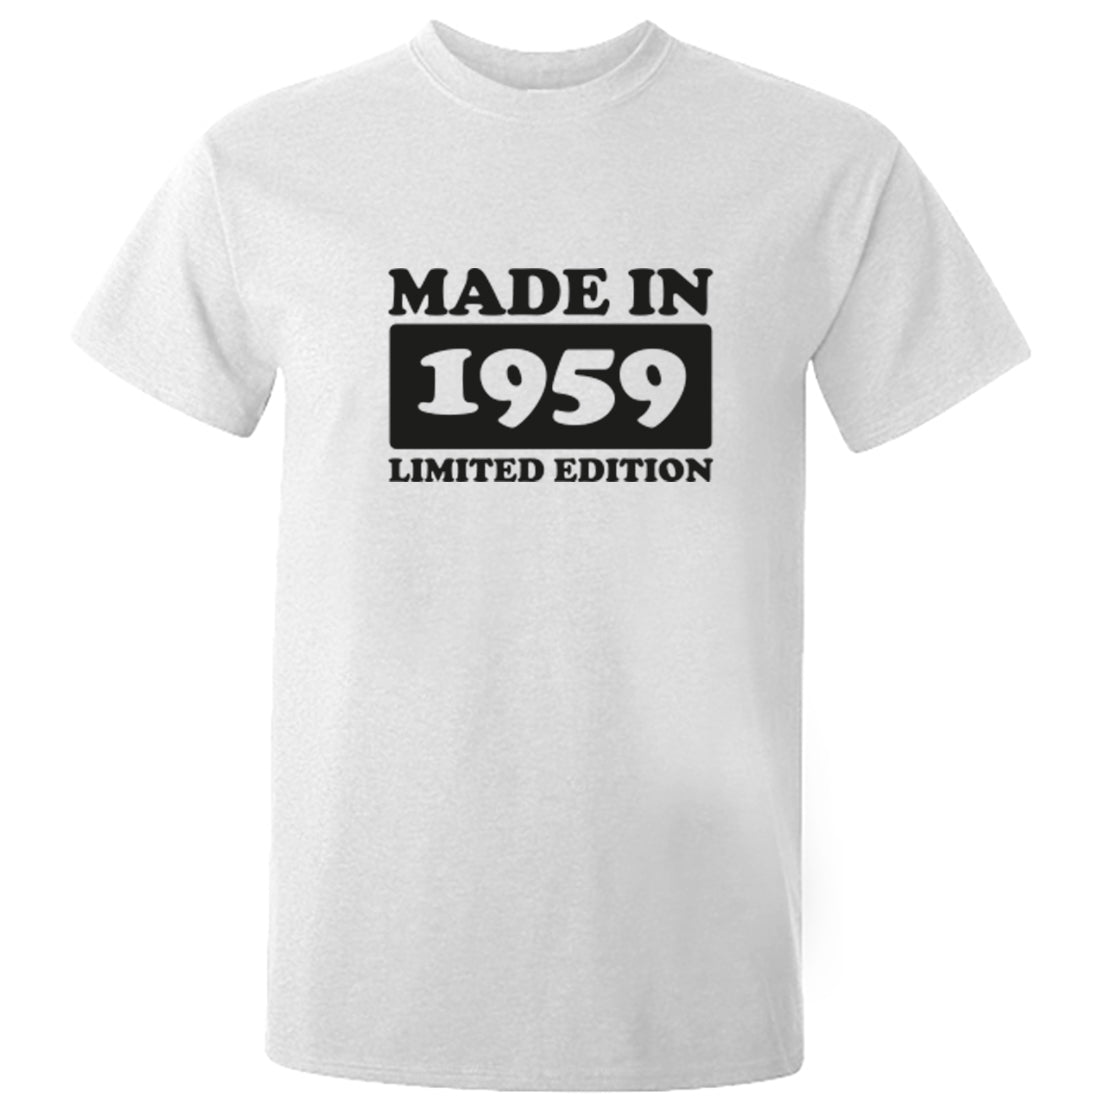 Made In 1959 Limited Edition Unisex Fit T-Shirt K1916 - Illustrated Identity Ltd.